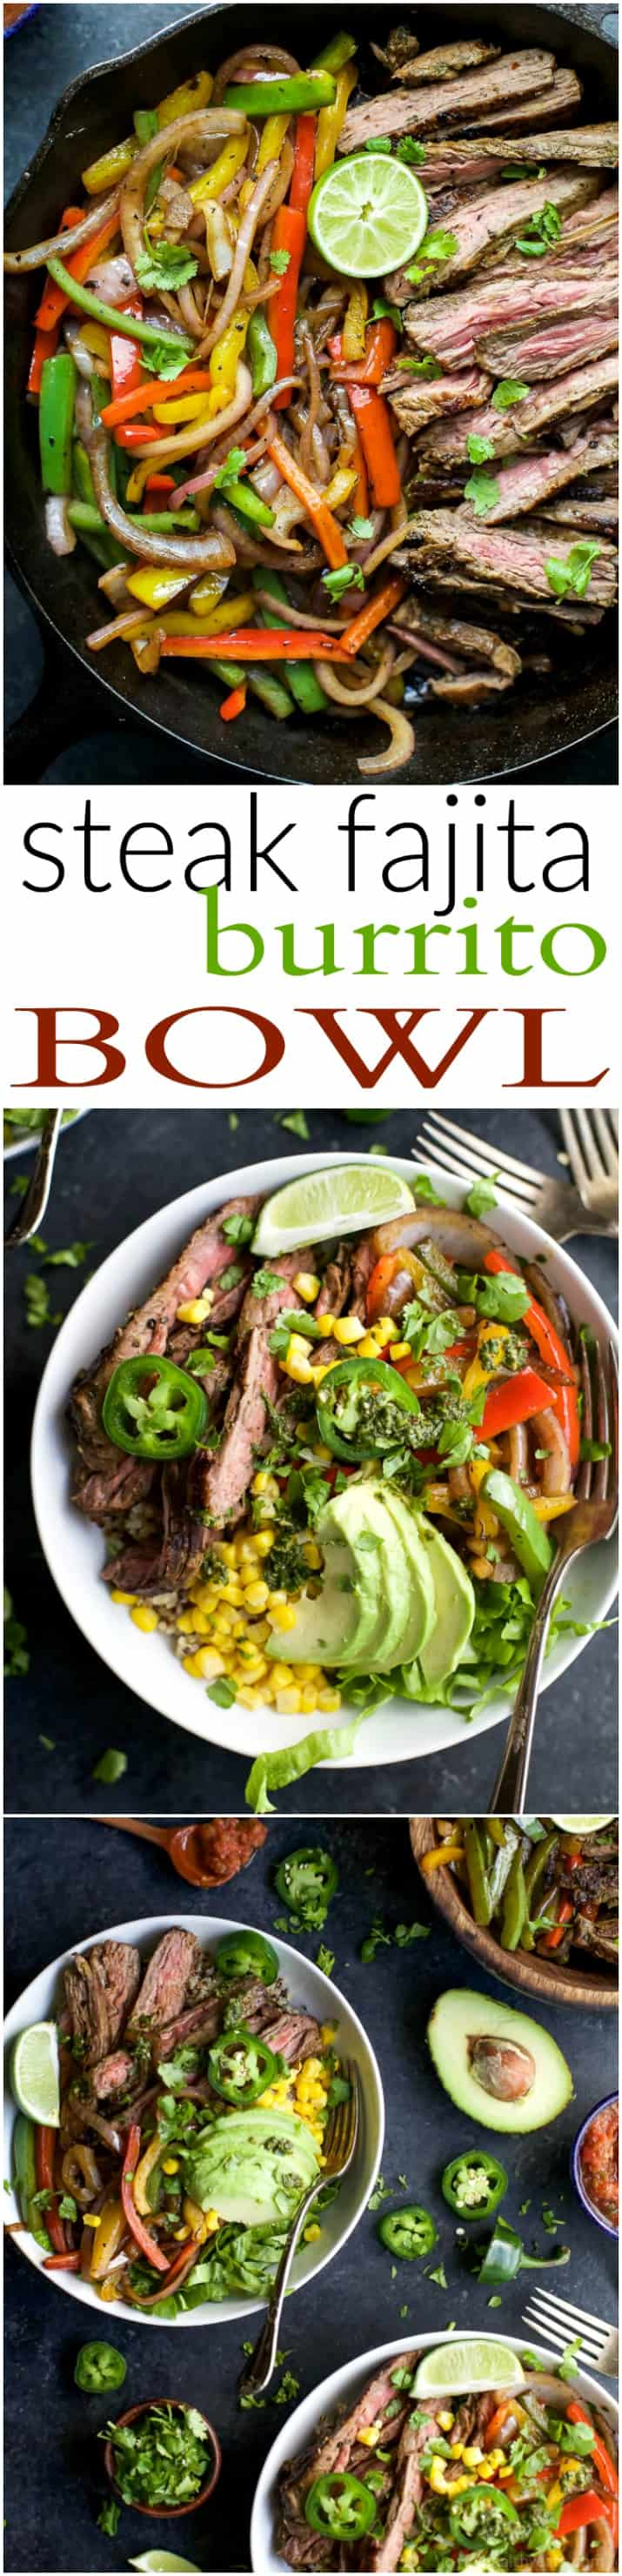 Homemade STEAK FAJITA BURRITO BOWLS filled with quinoa, fajita steak, avocado and a cilantro lime chimichurri sauce you'll adore. This quick Burrito Bowl is done in 30 minutes and is sure to be a favorite! | joyfulhealthyeats.com | Gluten Free Recipes